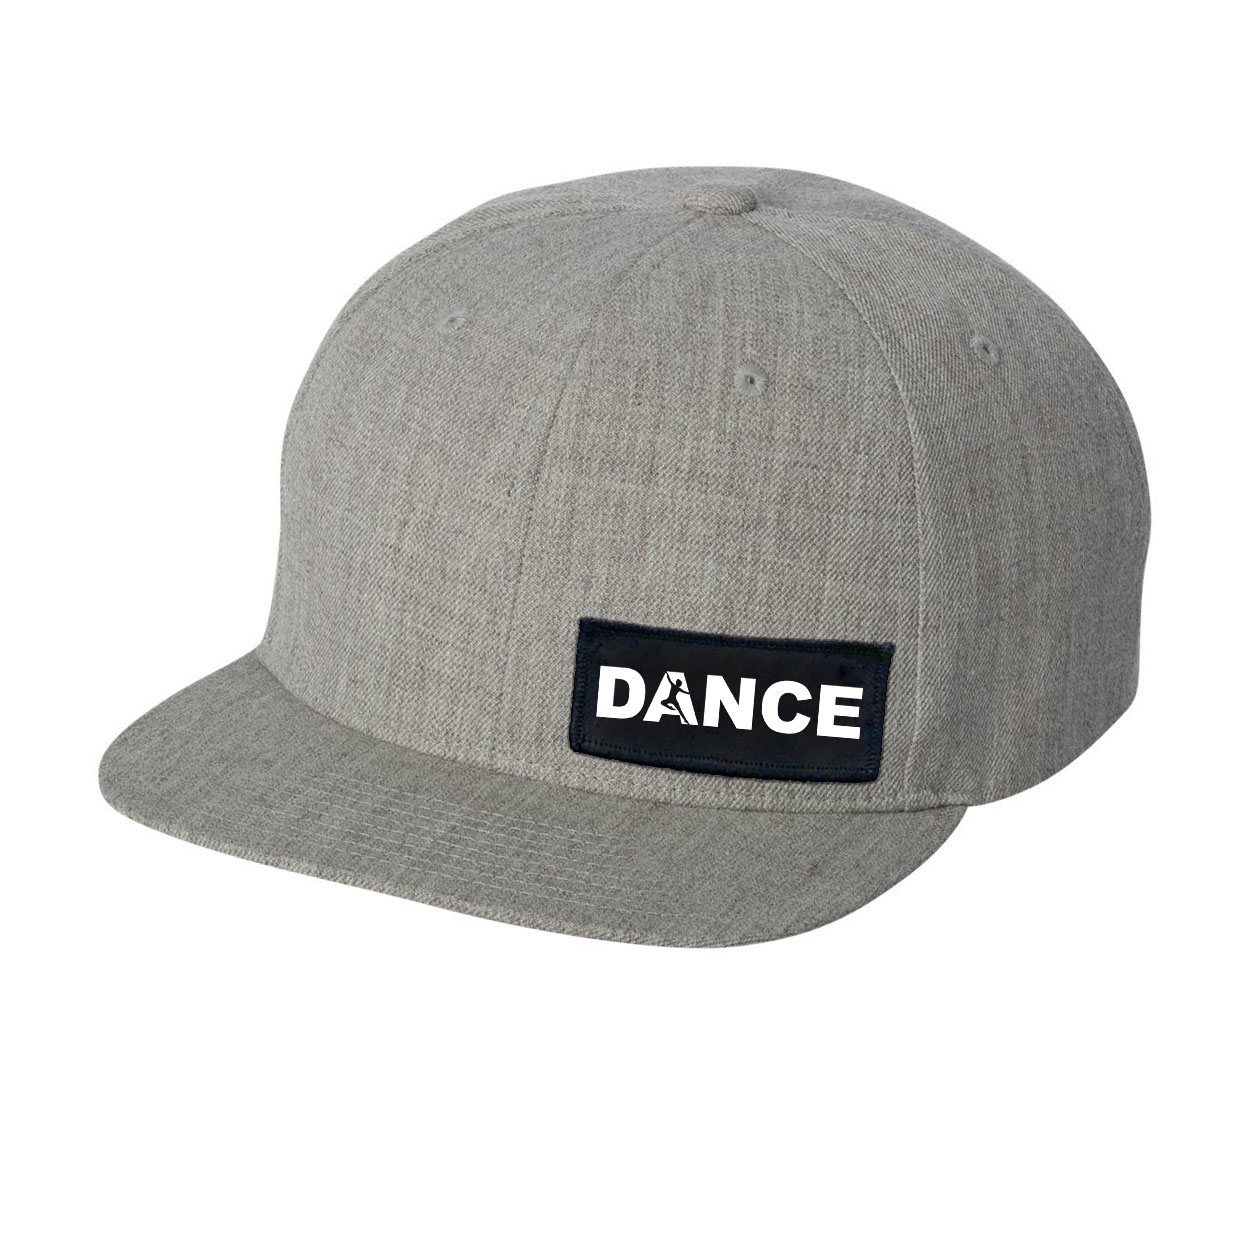 Dance Silhouette Logo Night Out Woven Patch Flat Brim Snapback Hat Heather Gray (White Logo)